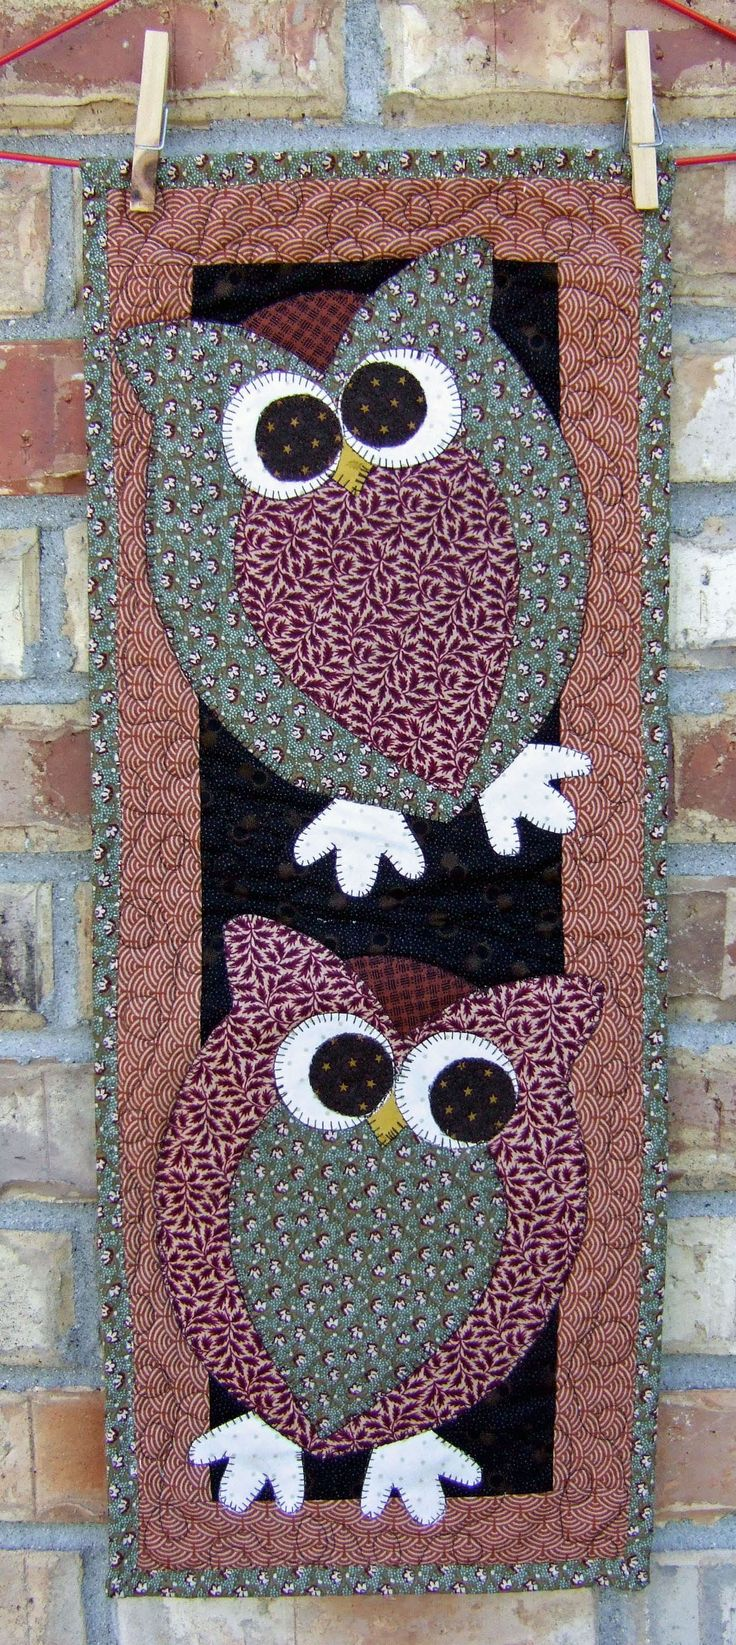 Image detail for -Quilt Pattern Design Skinnies: What a Hoot! | Quilt Pattern Design by ...